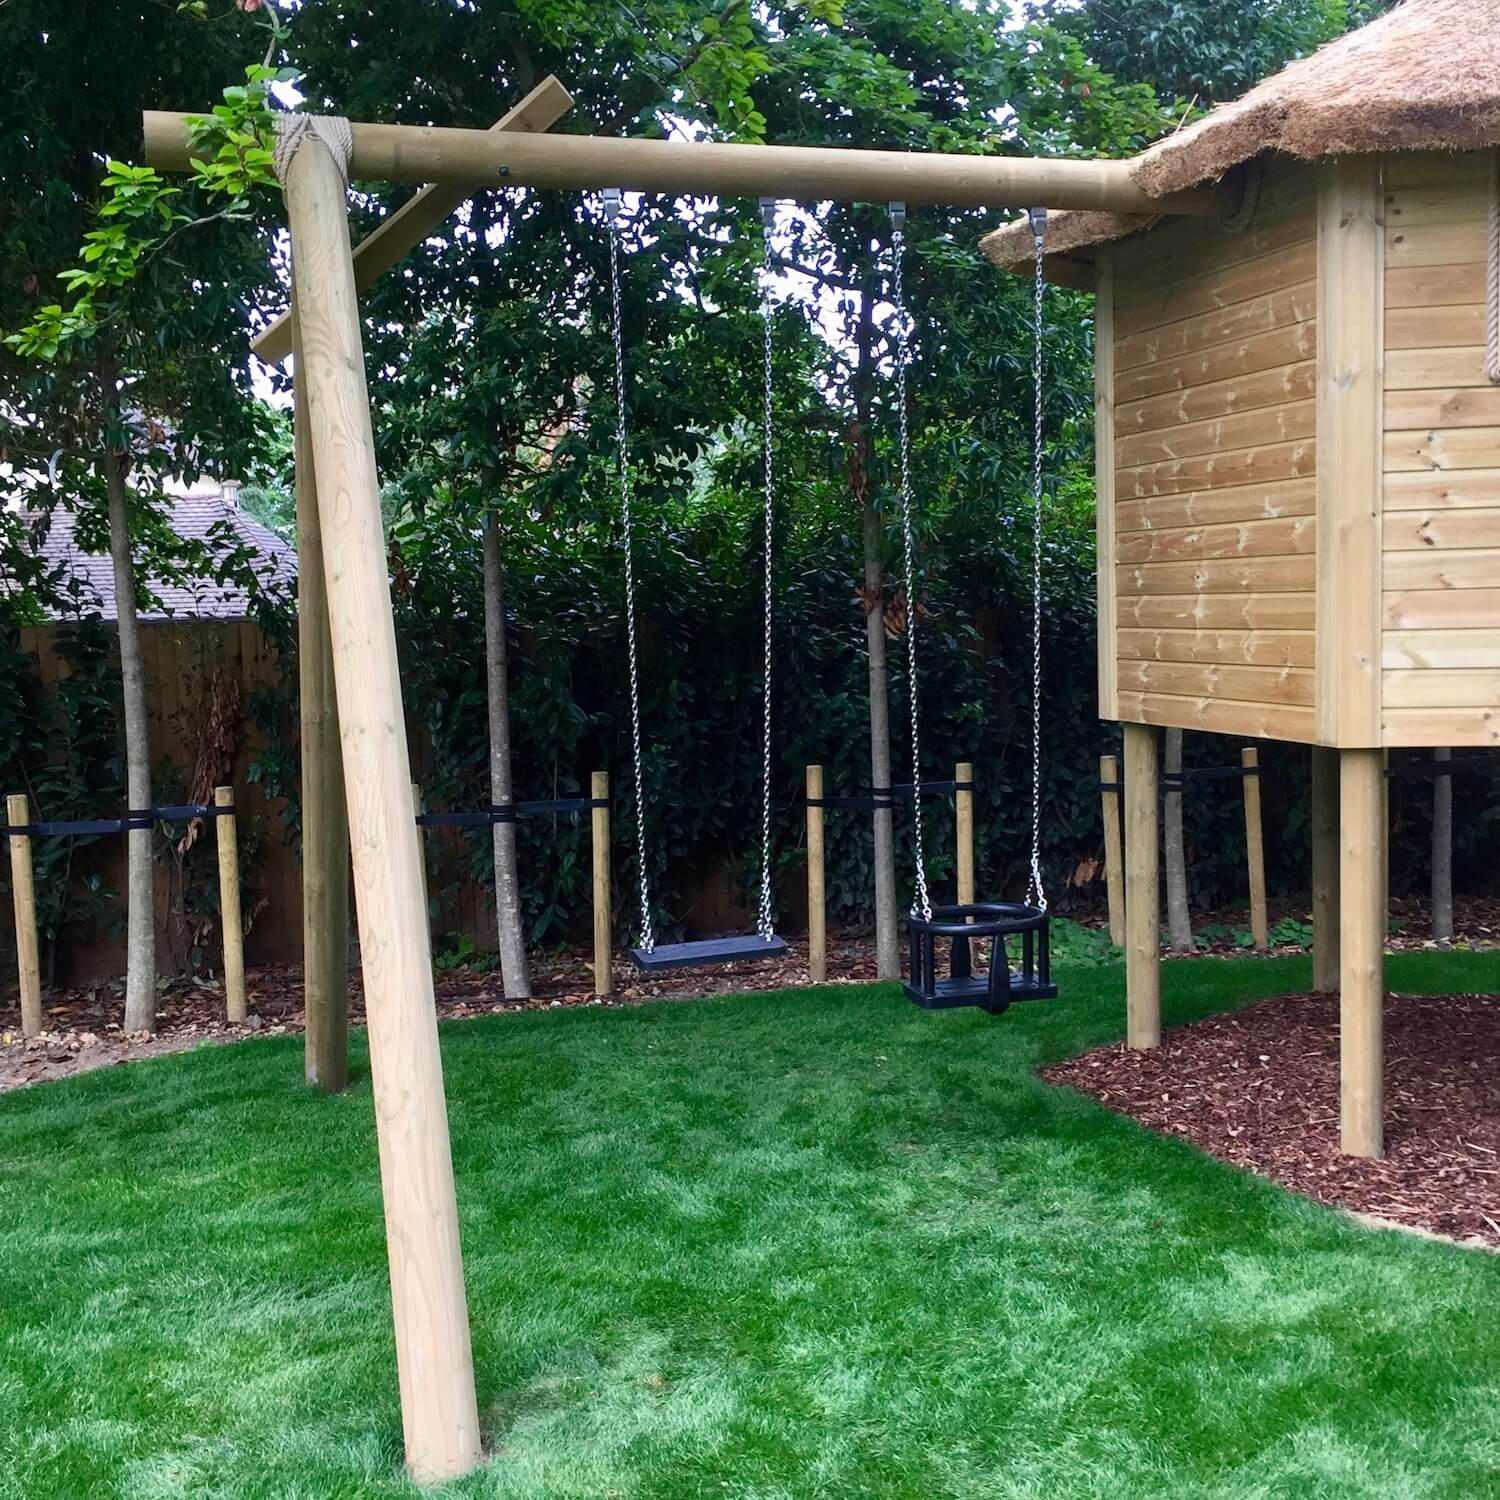 """...'A' frame swing set attached to a treehouse"""